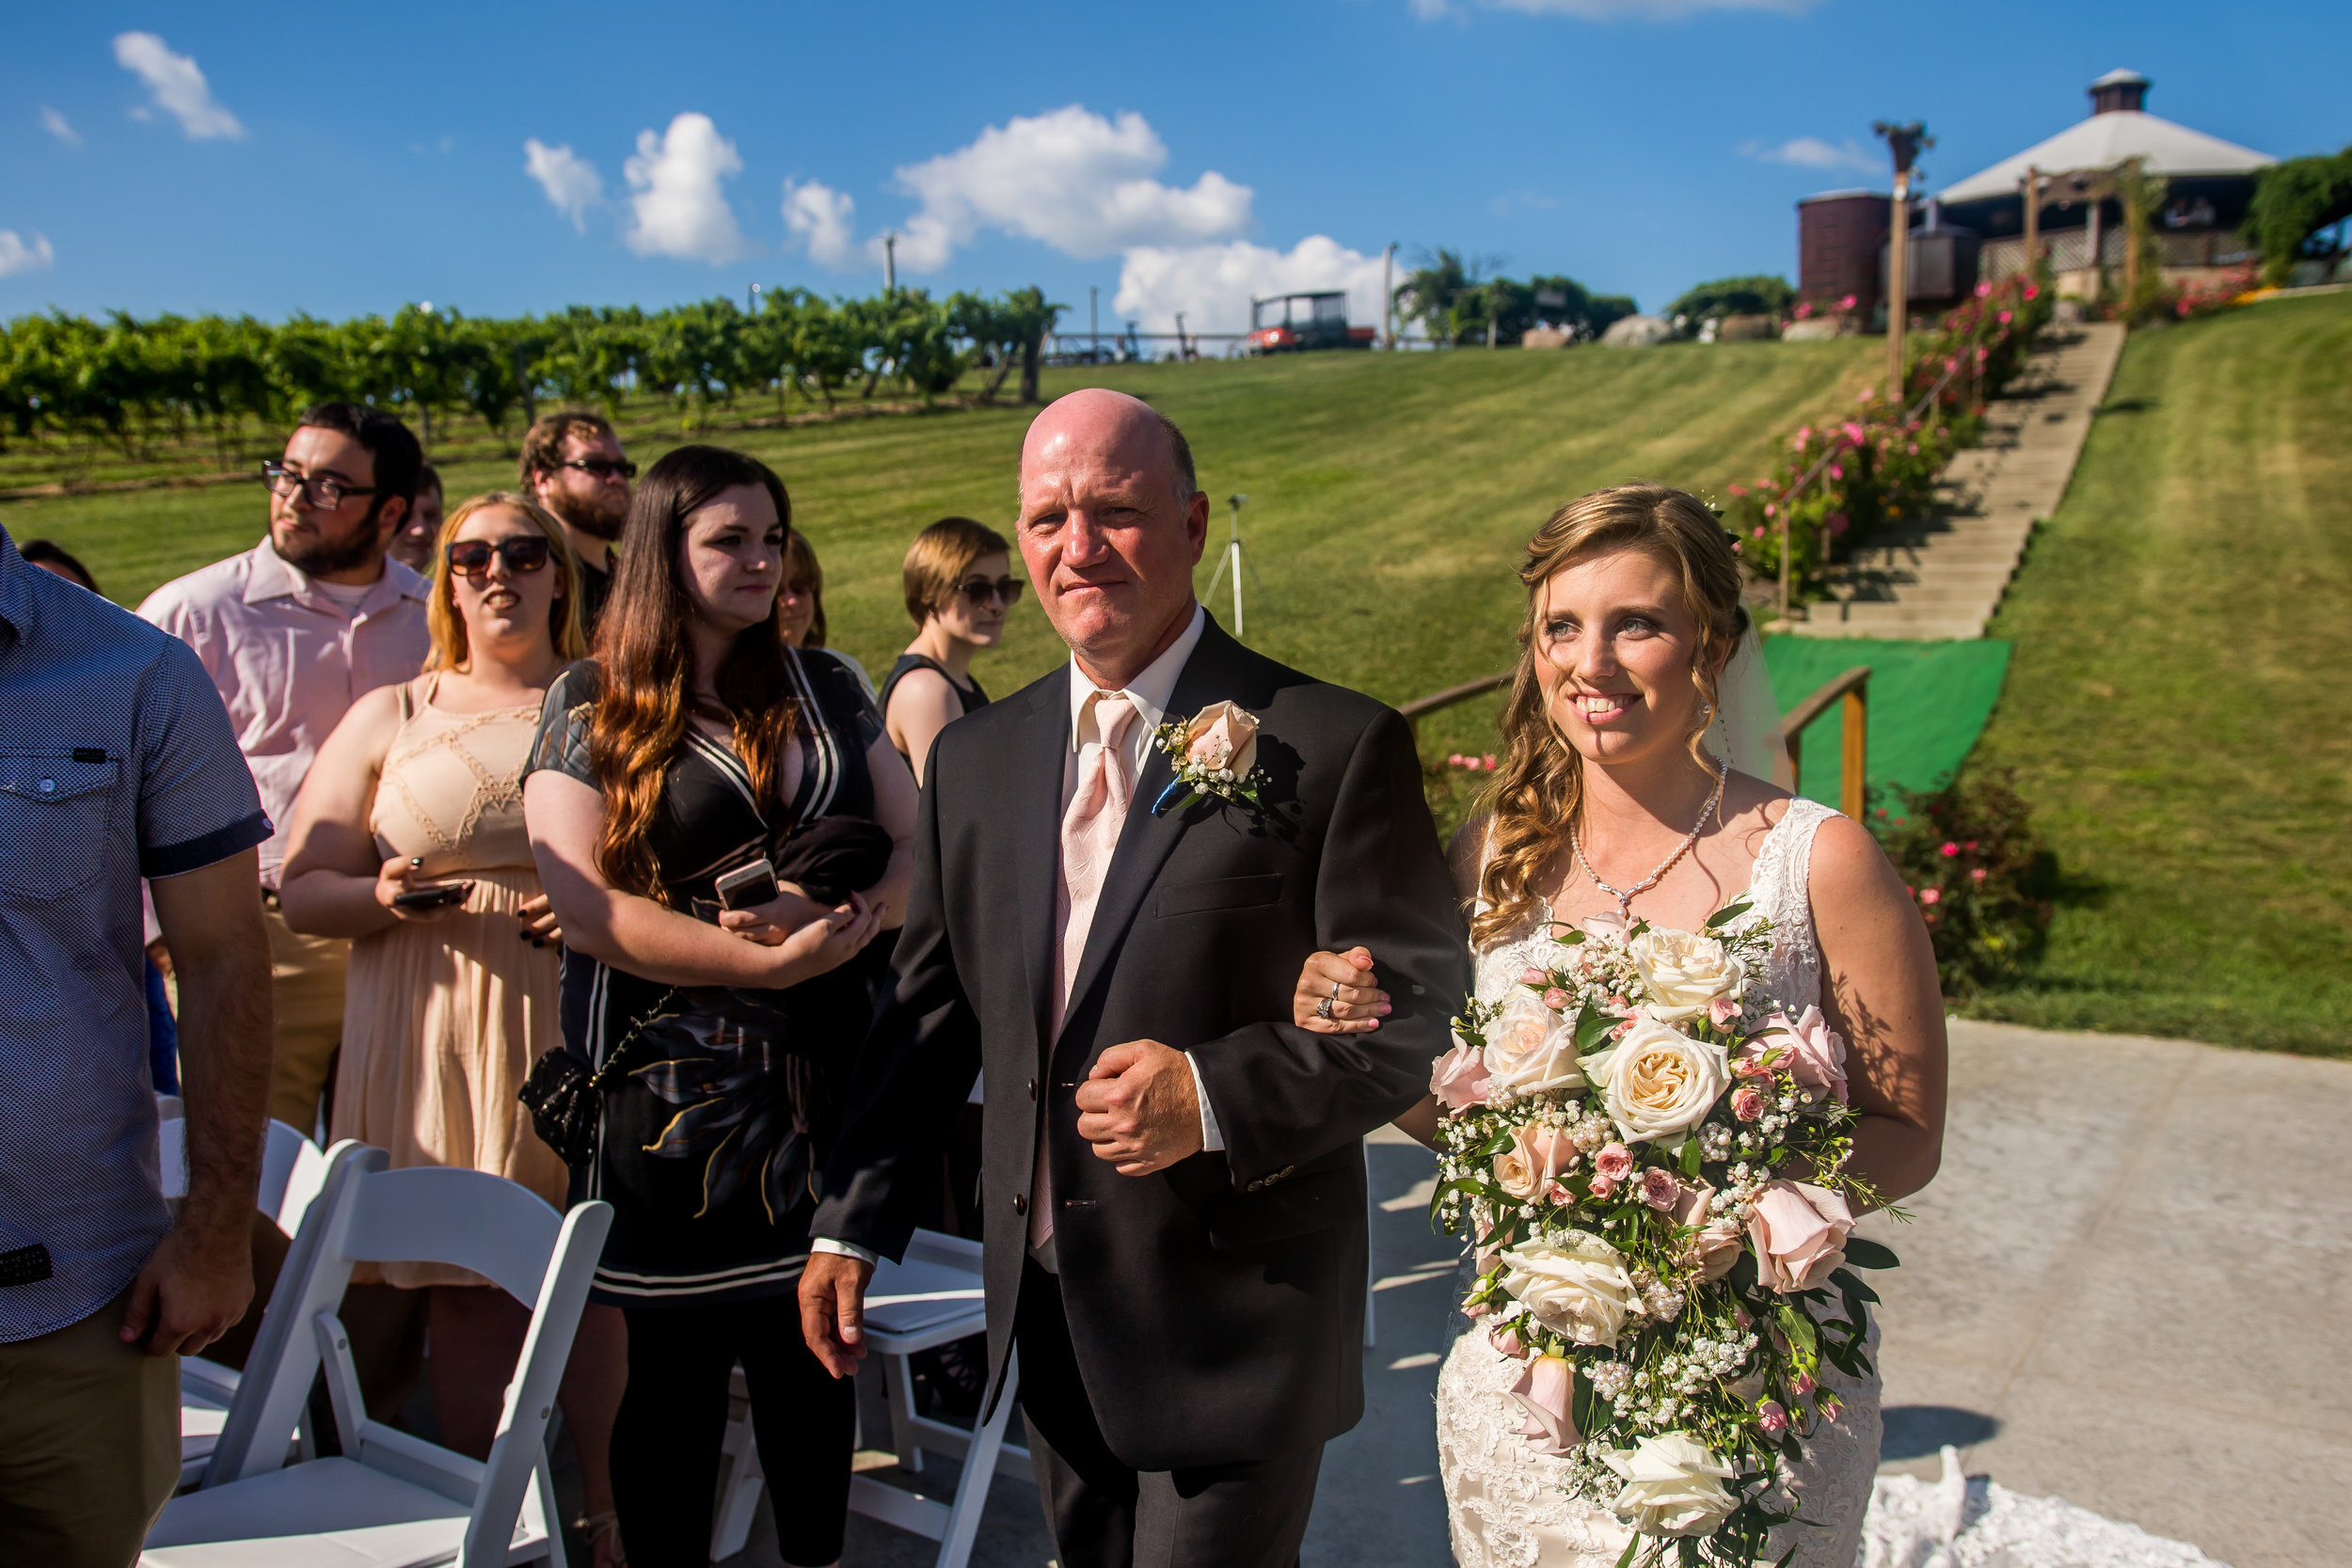 Wedding_Photography_Vinings-623.jpg